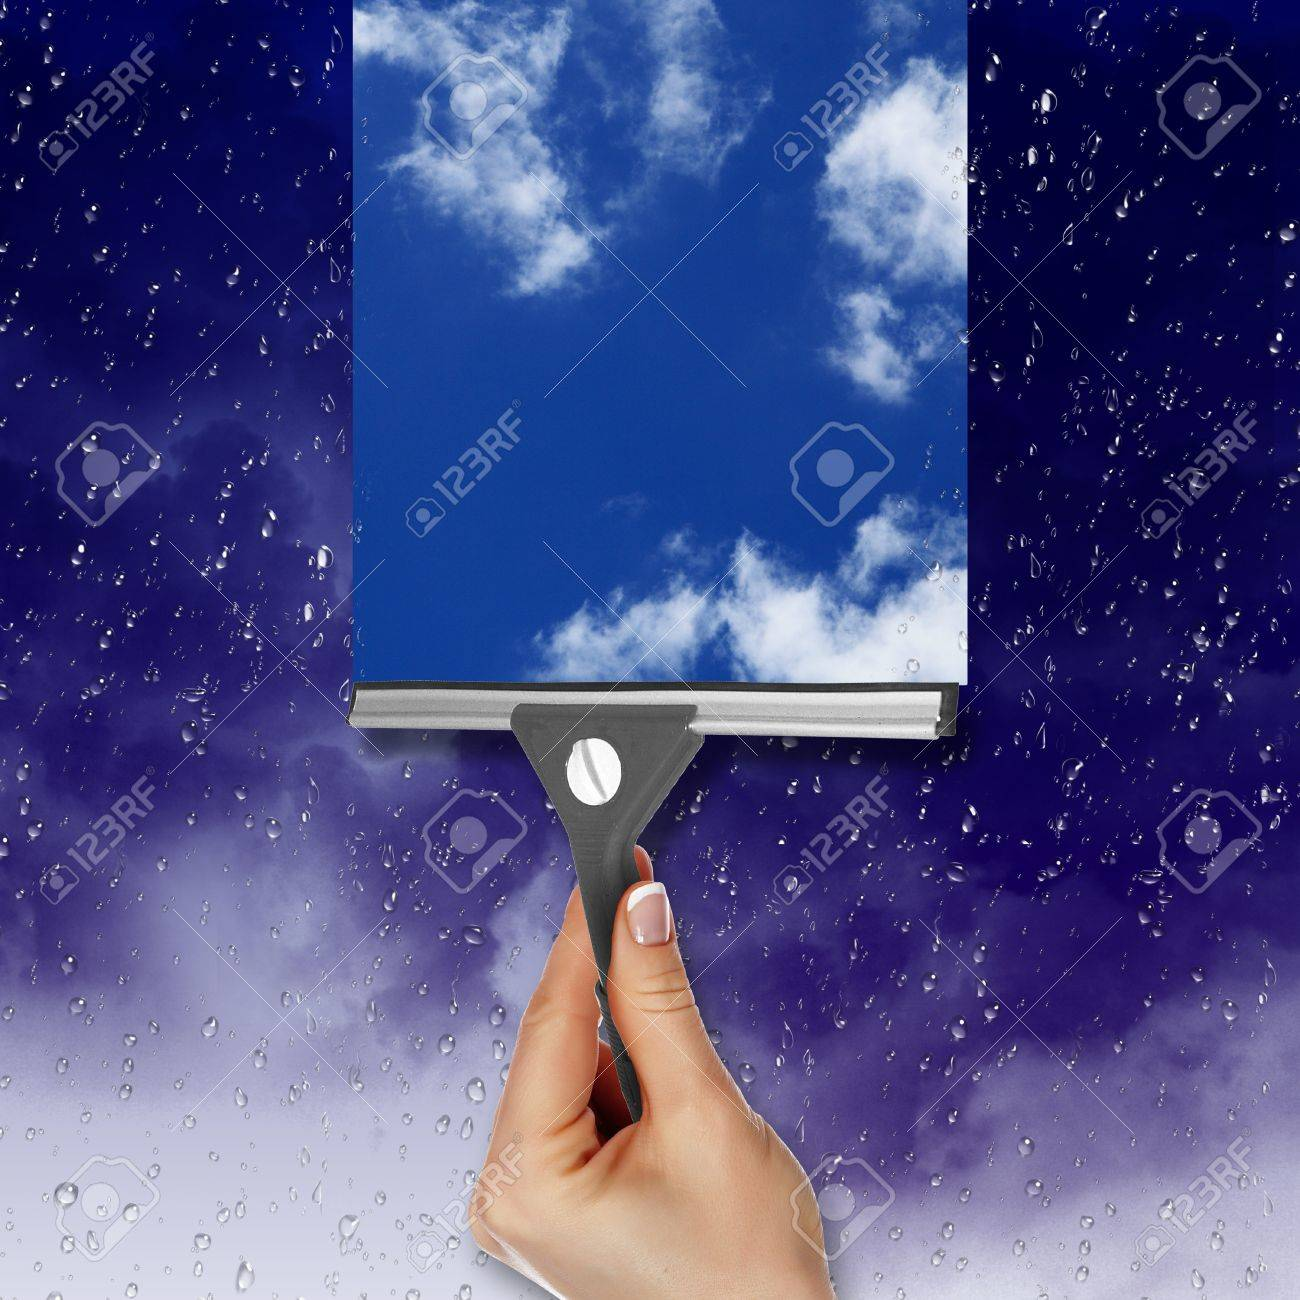 Hand cleaning window with blue sky and white clouds Stock Photo - 13246918